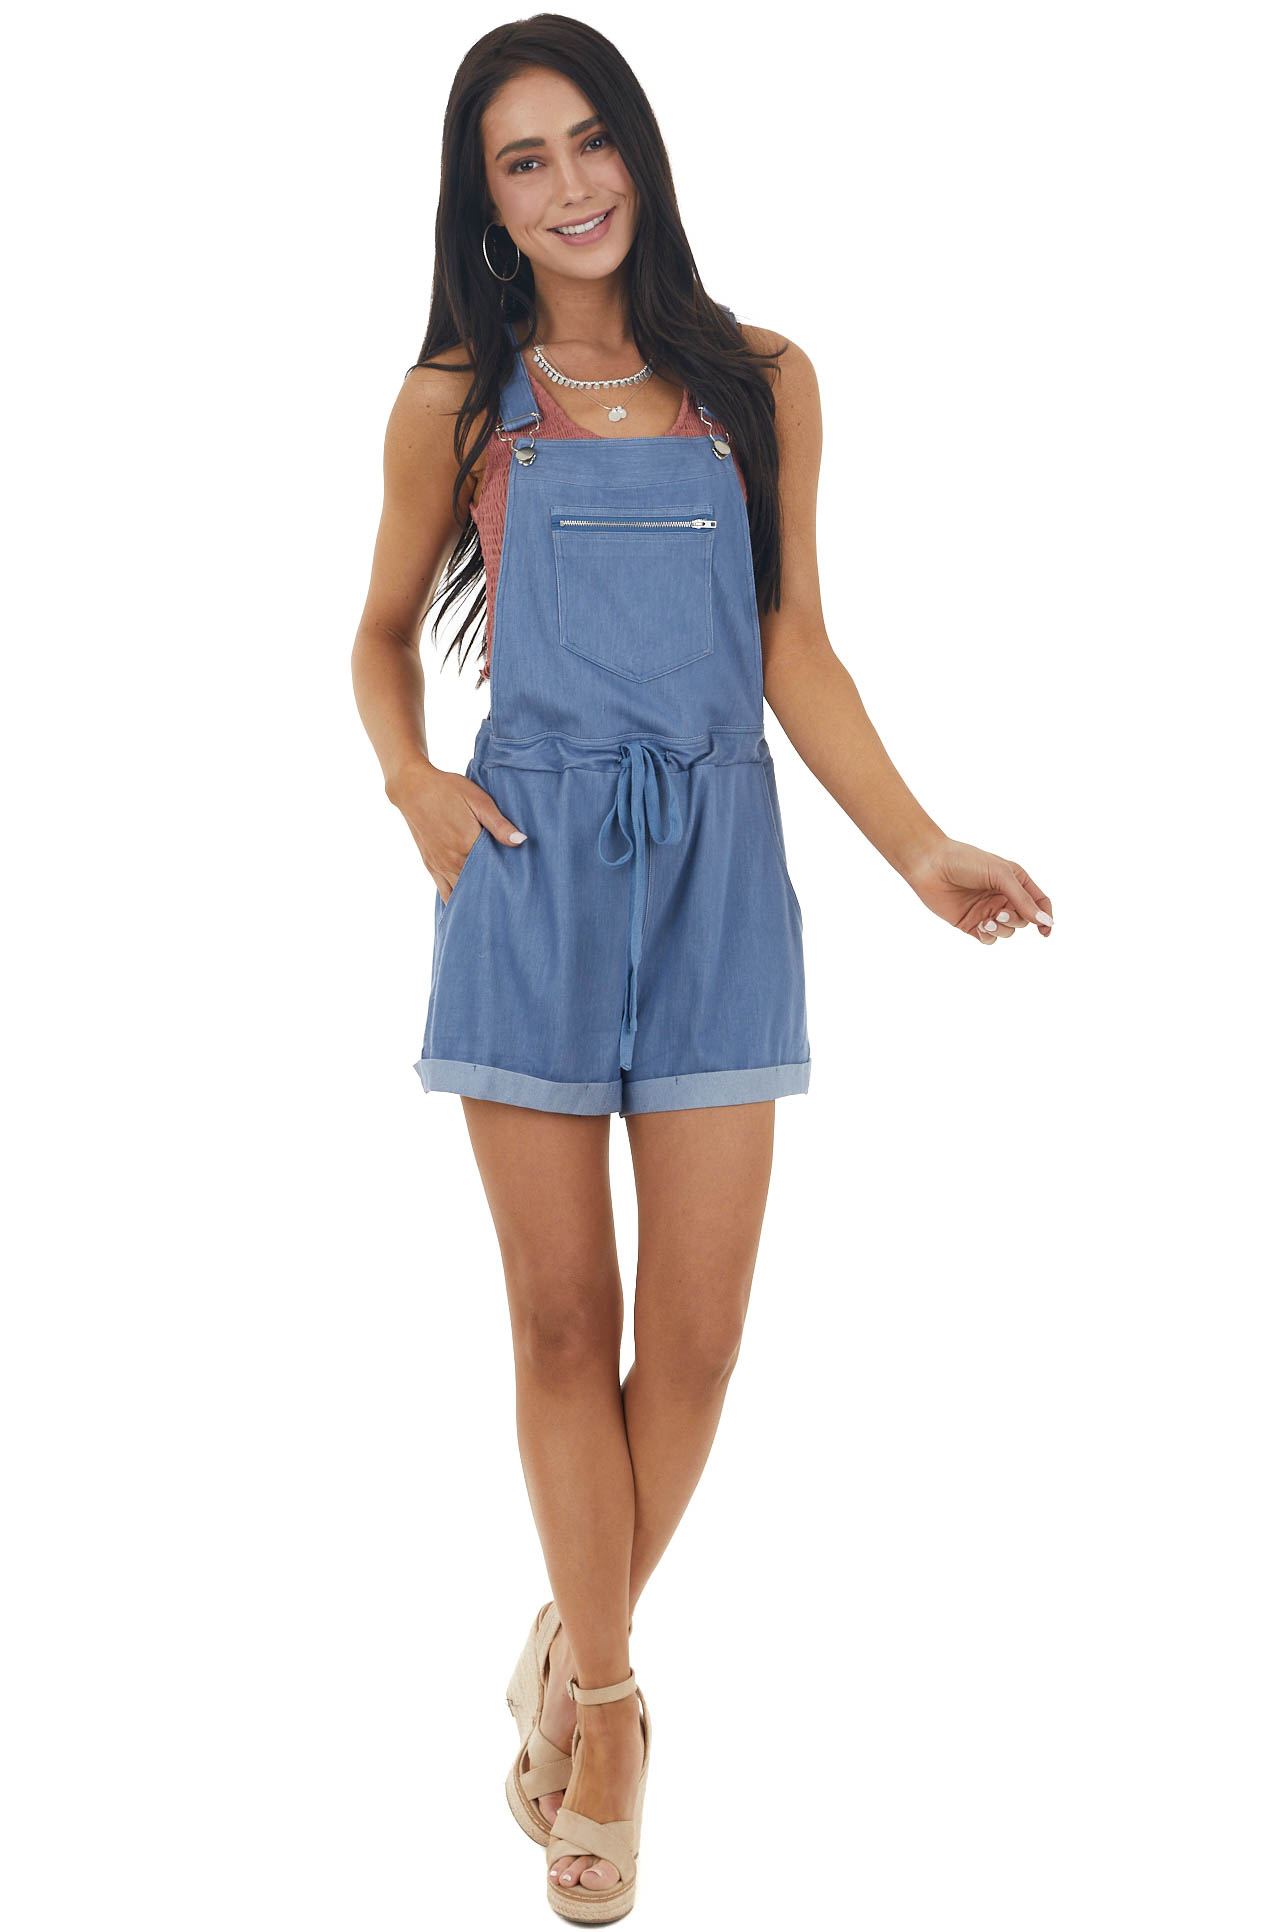 Dusty Blue Sleeveless Knit Overalls with Zipper Detail